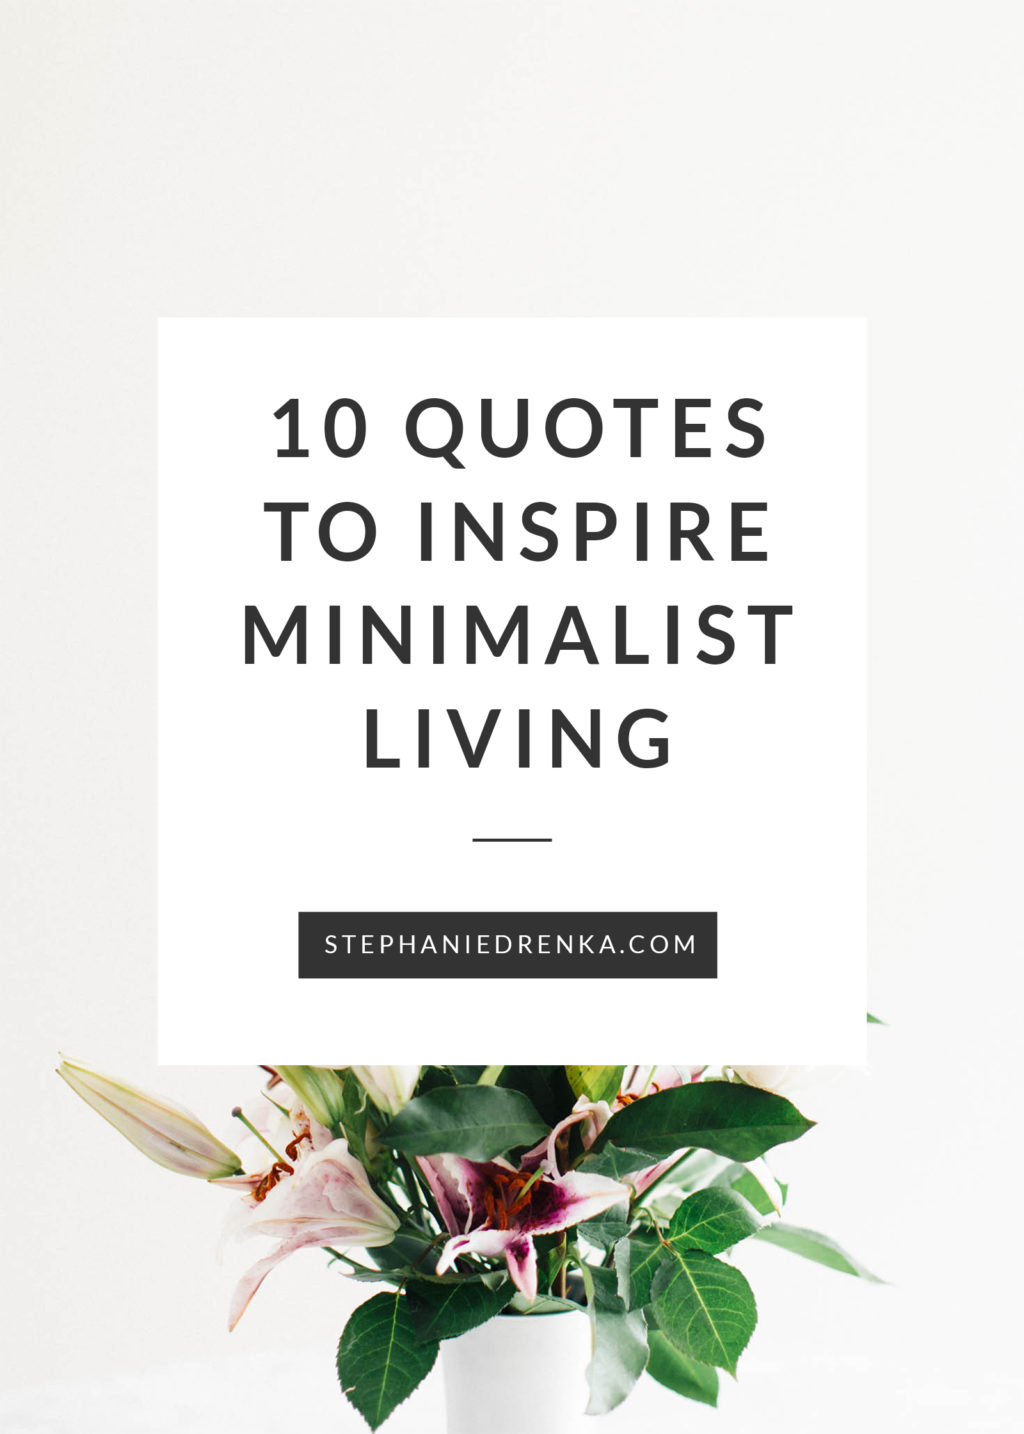 10 Quotes to Inspire a Minimalist Lifestyle